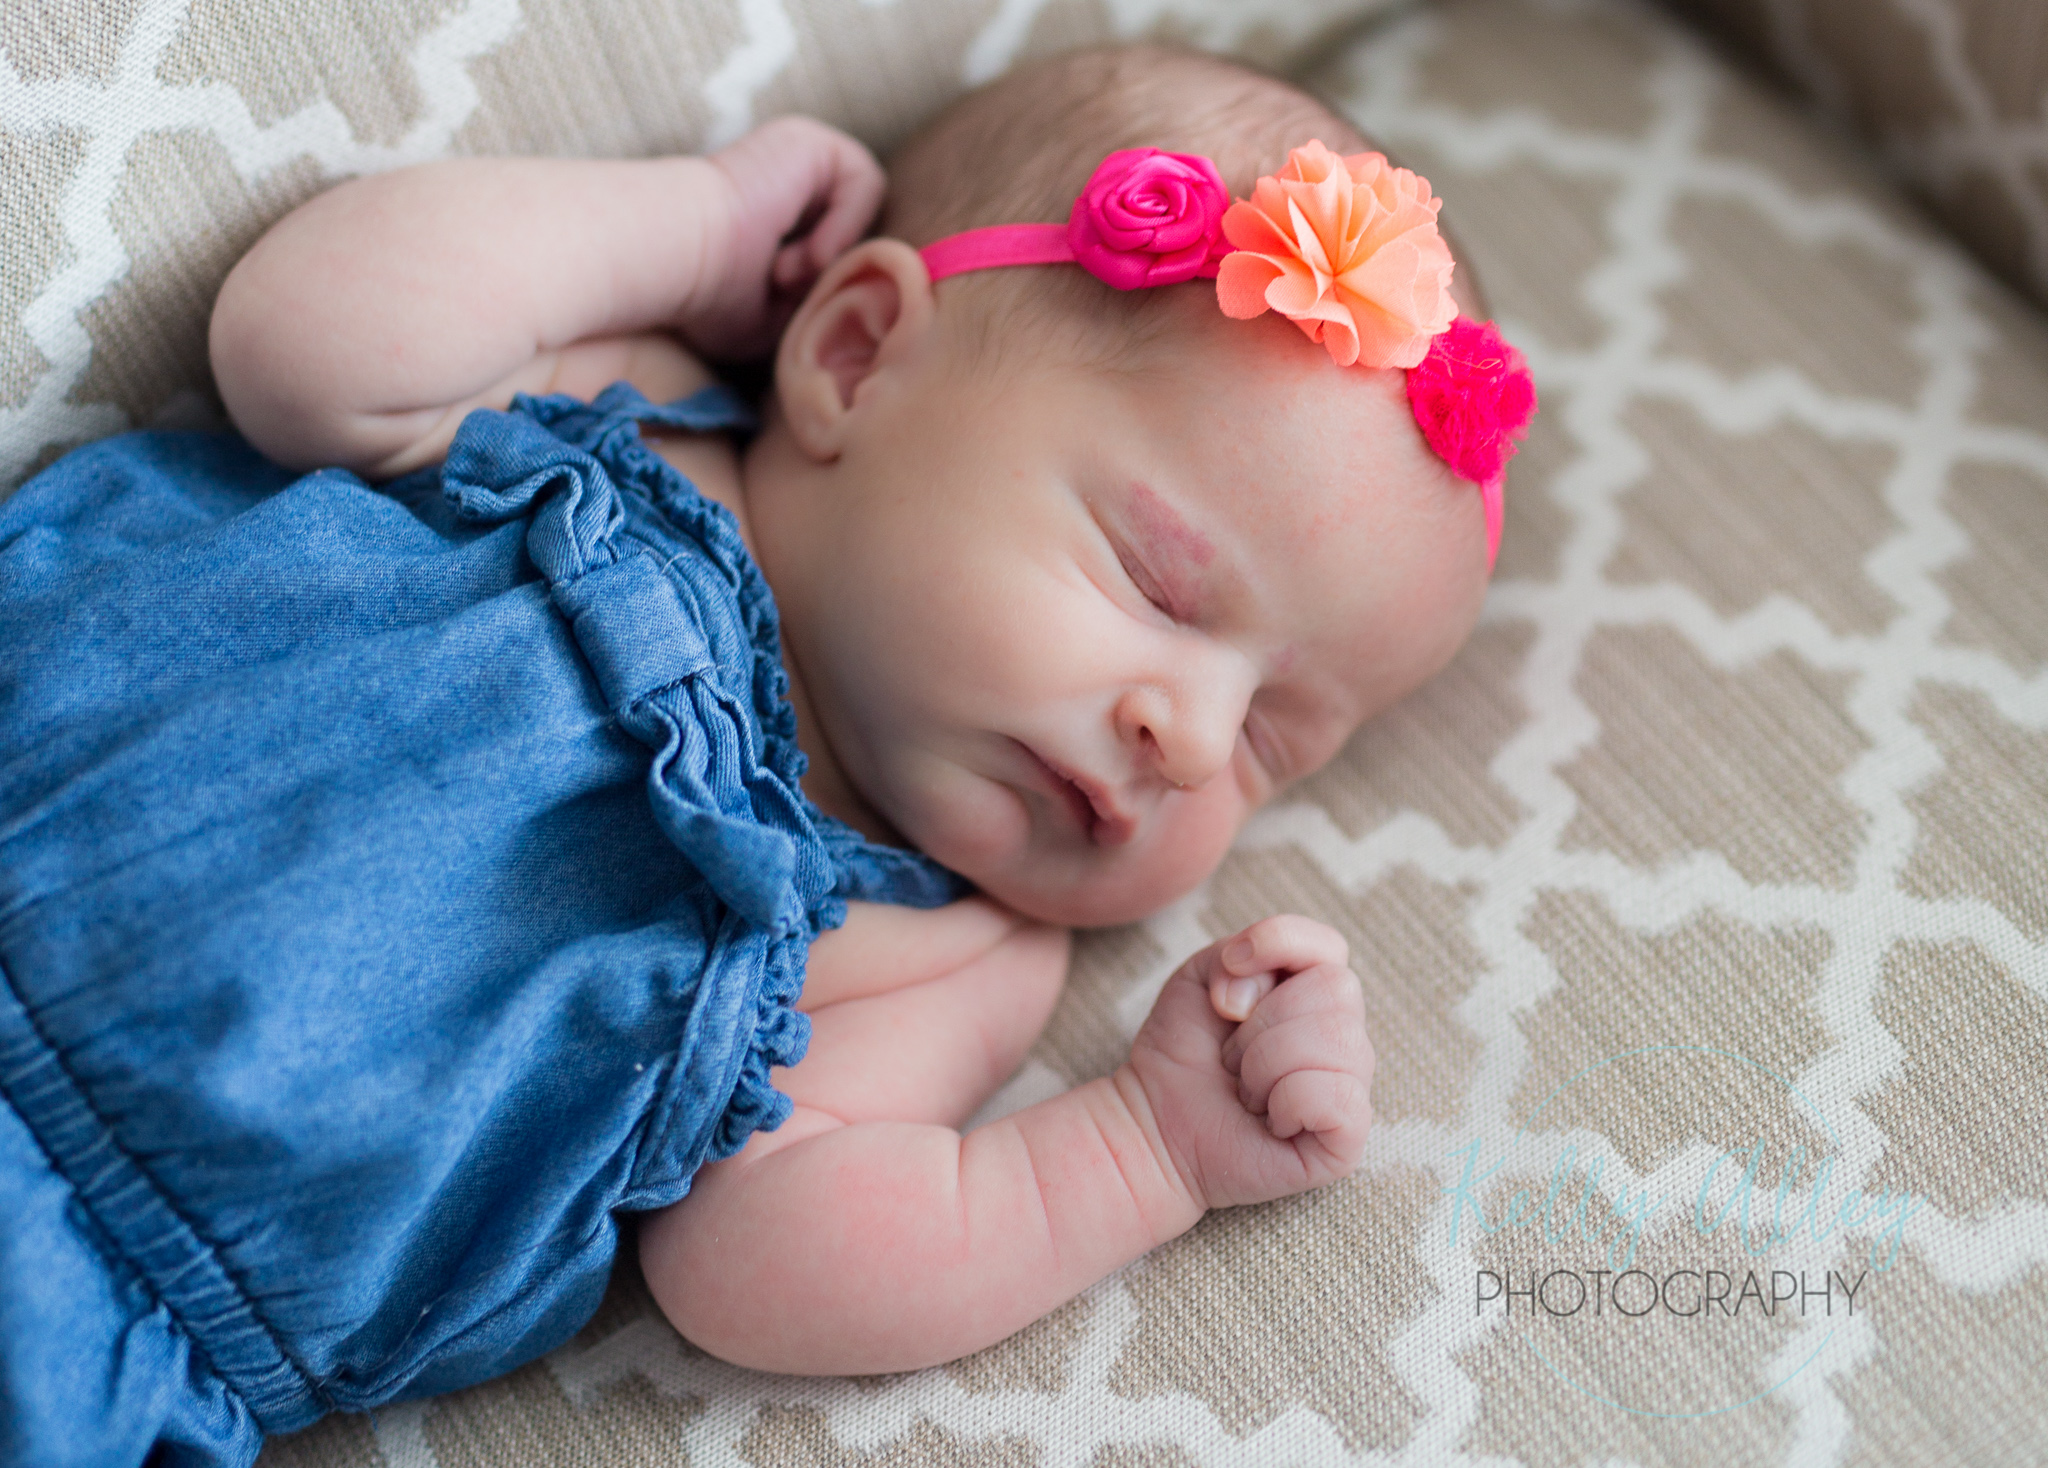 WaveryHill_Newborn_webshare (36 of 45).jpg